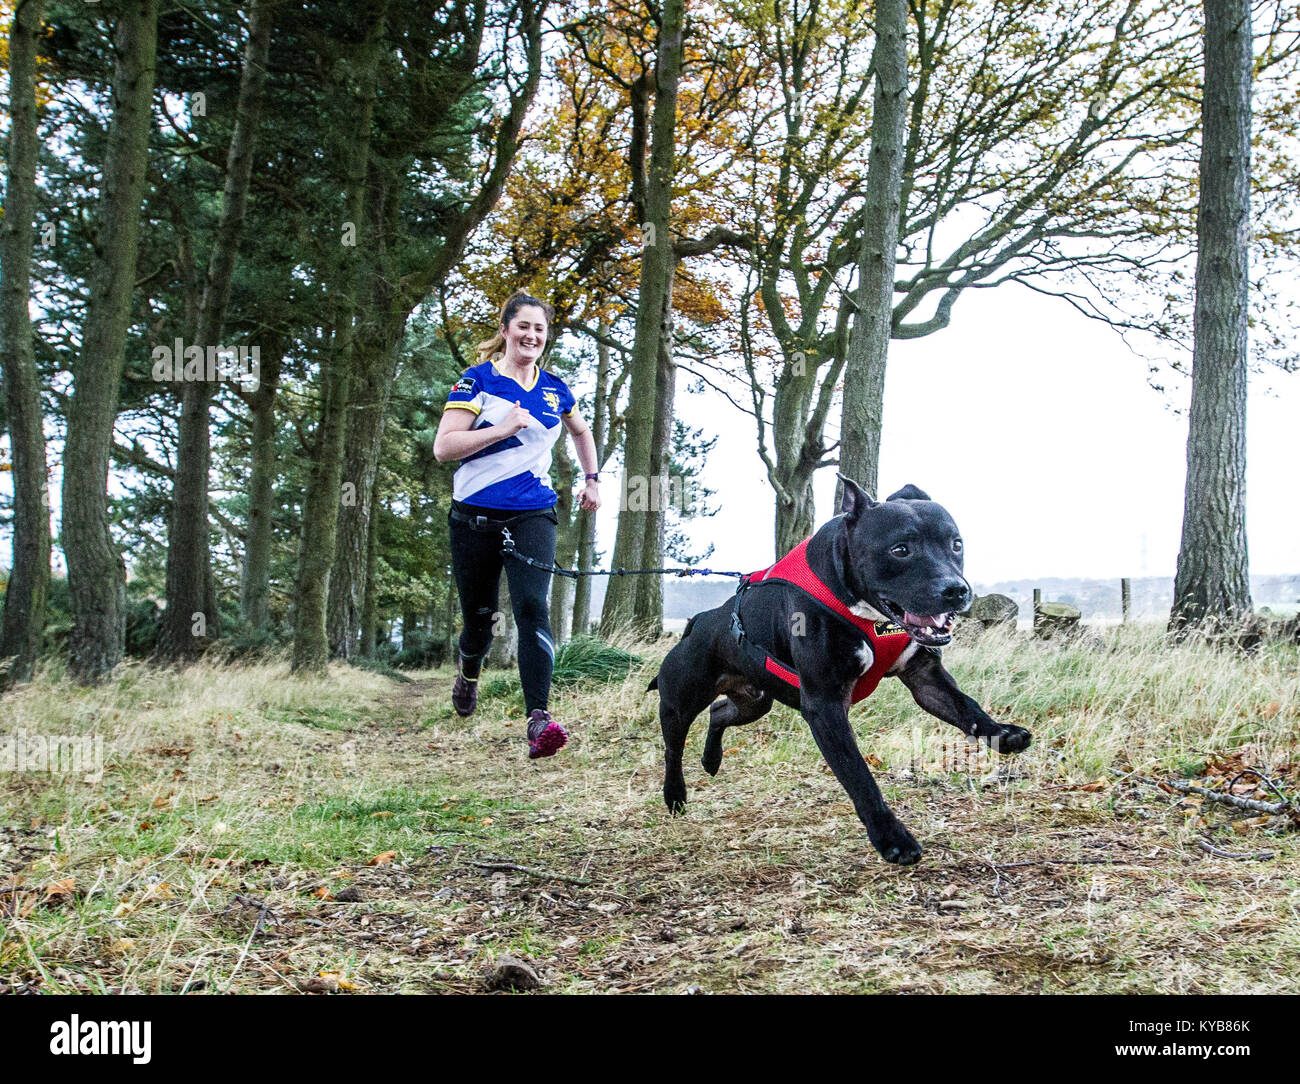 Dogs and runners competing in CaniCross - Stock Image